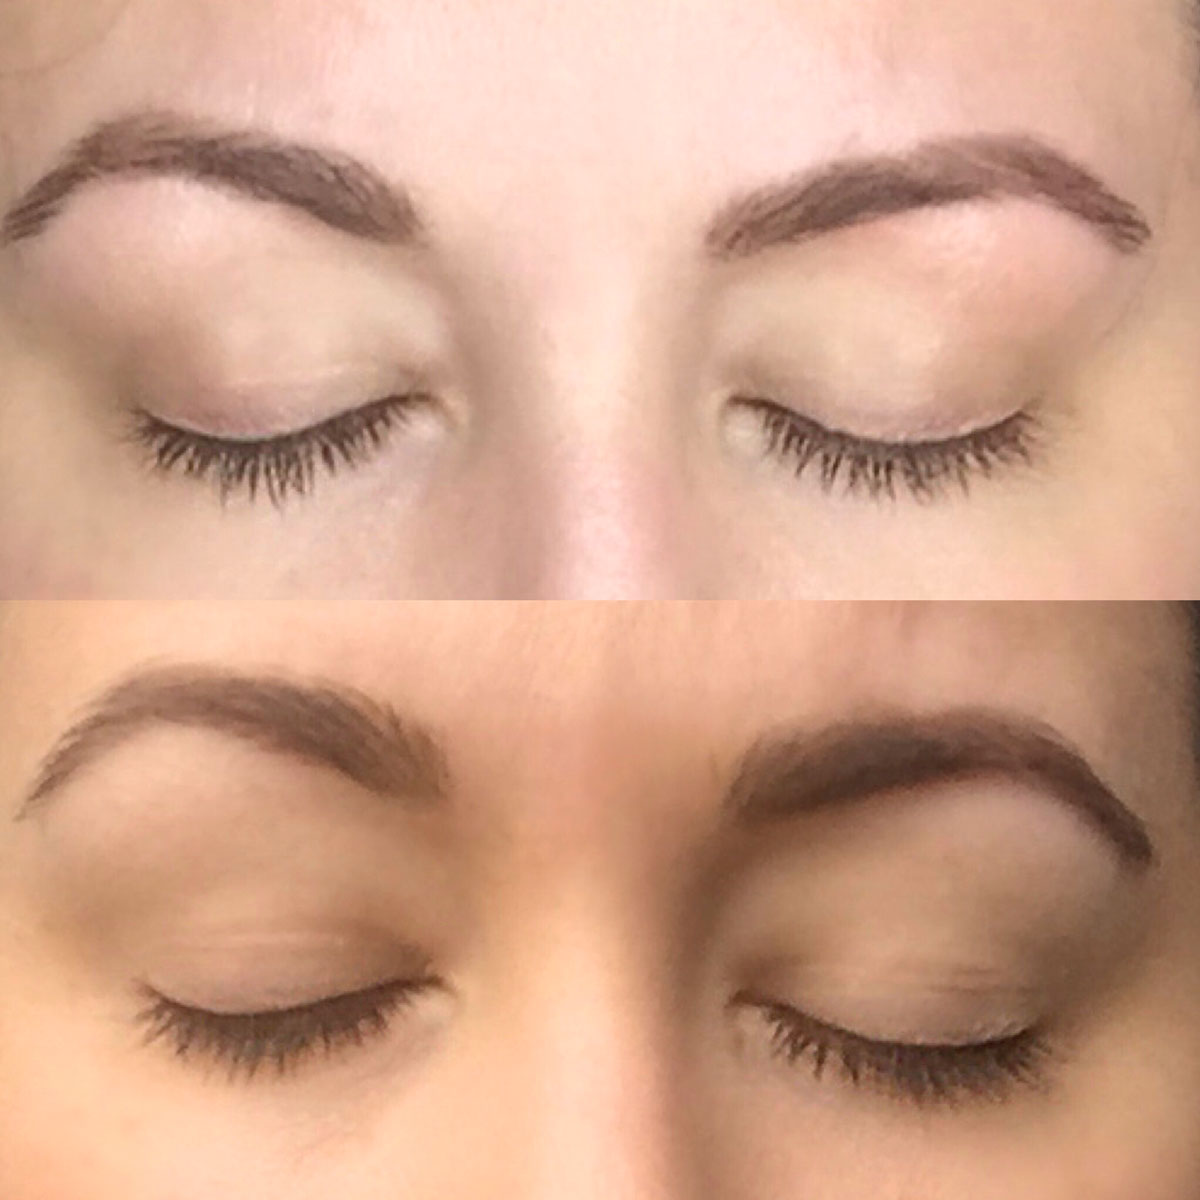 If you wear lash extensions, you need to invest in a great lash growth serum for optimal lash growth, here's why.